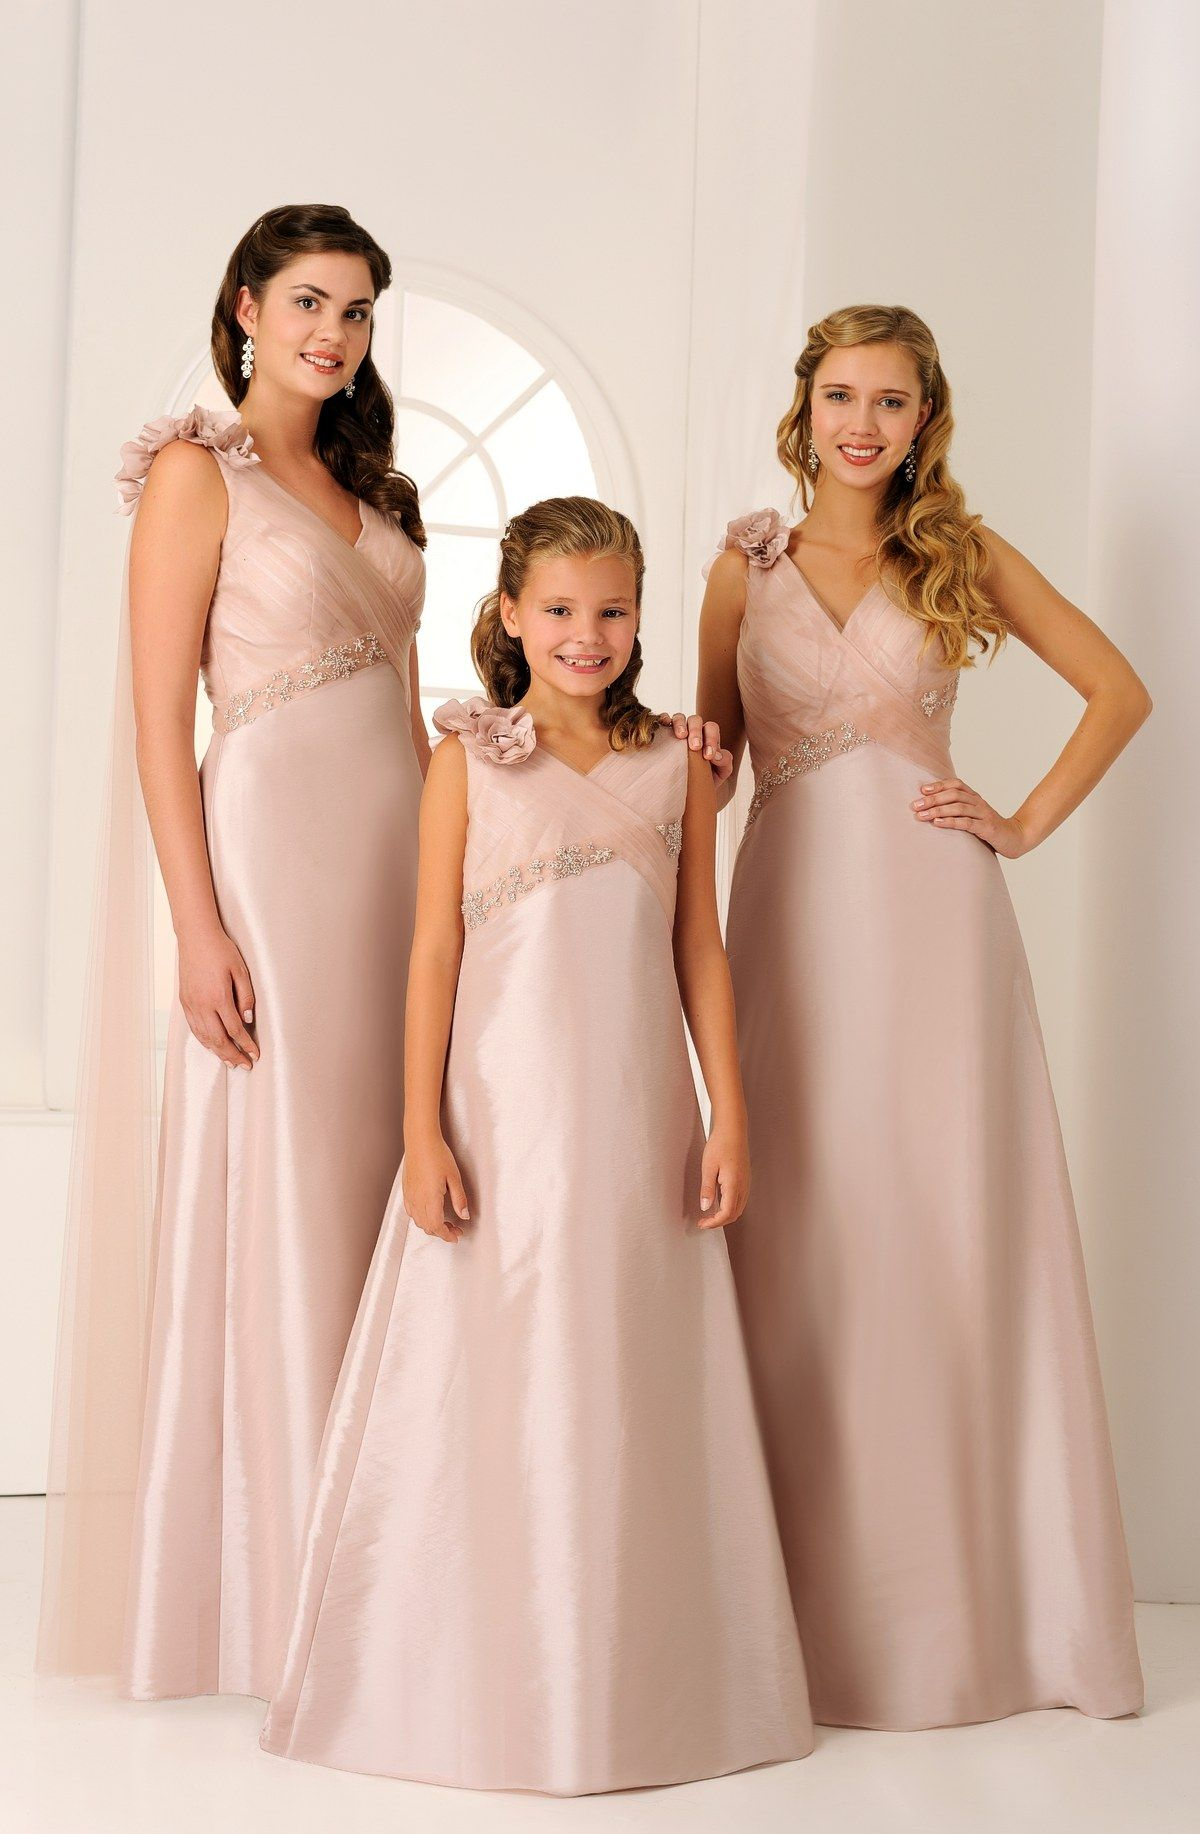 Vrb71256 adult bridesmaid vrf81254 teen maid and flower girl adult bridesmaid teen maid and flower girl gown samples available in store ombrellifo Image collections